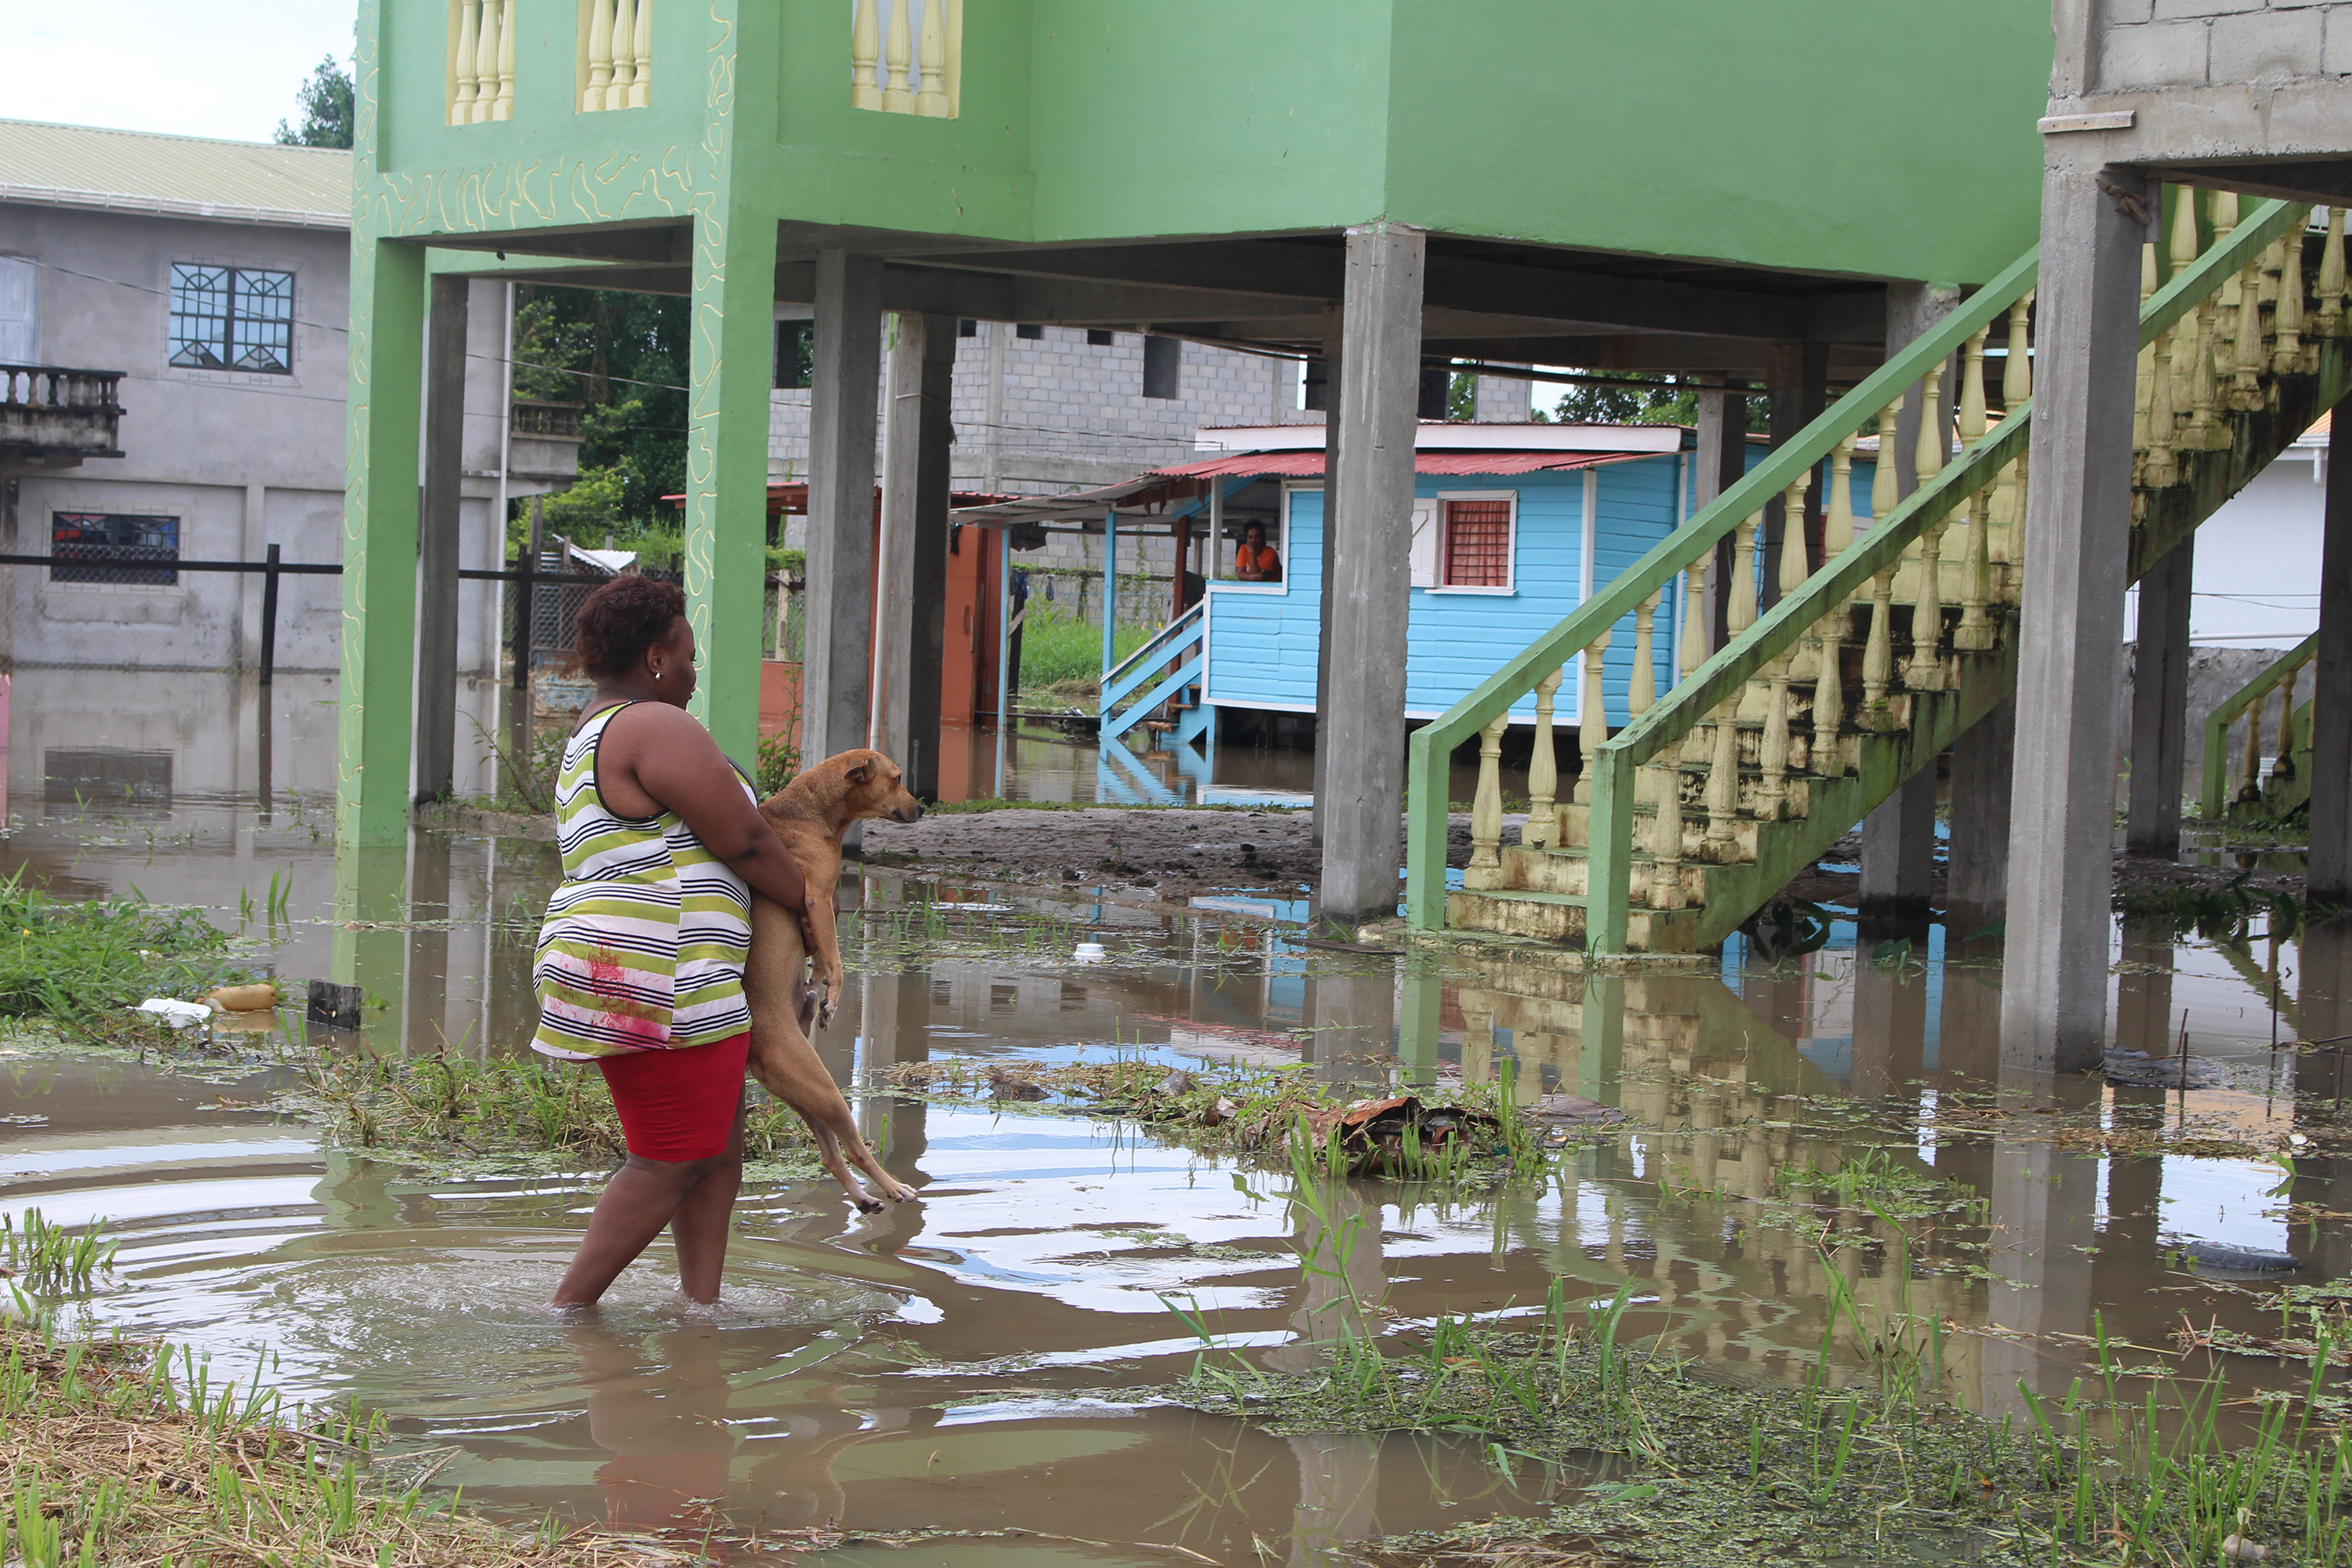 Flood Plunges City East Bank Residents Into Misery